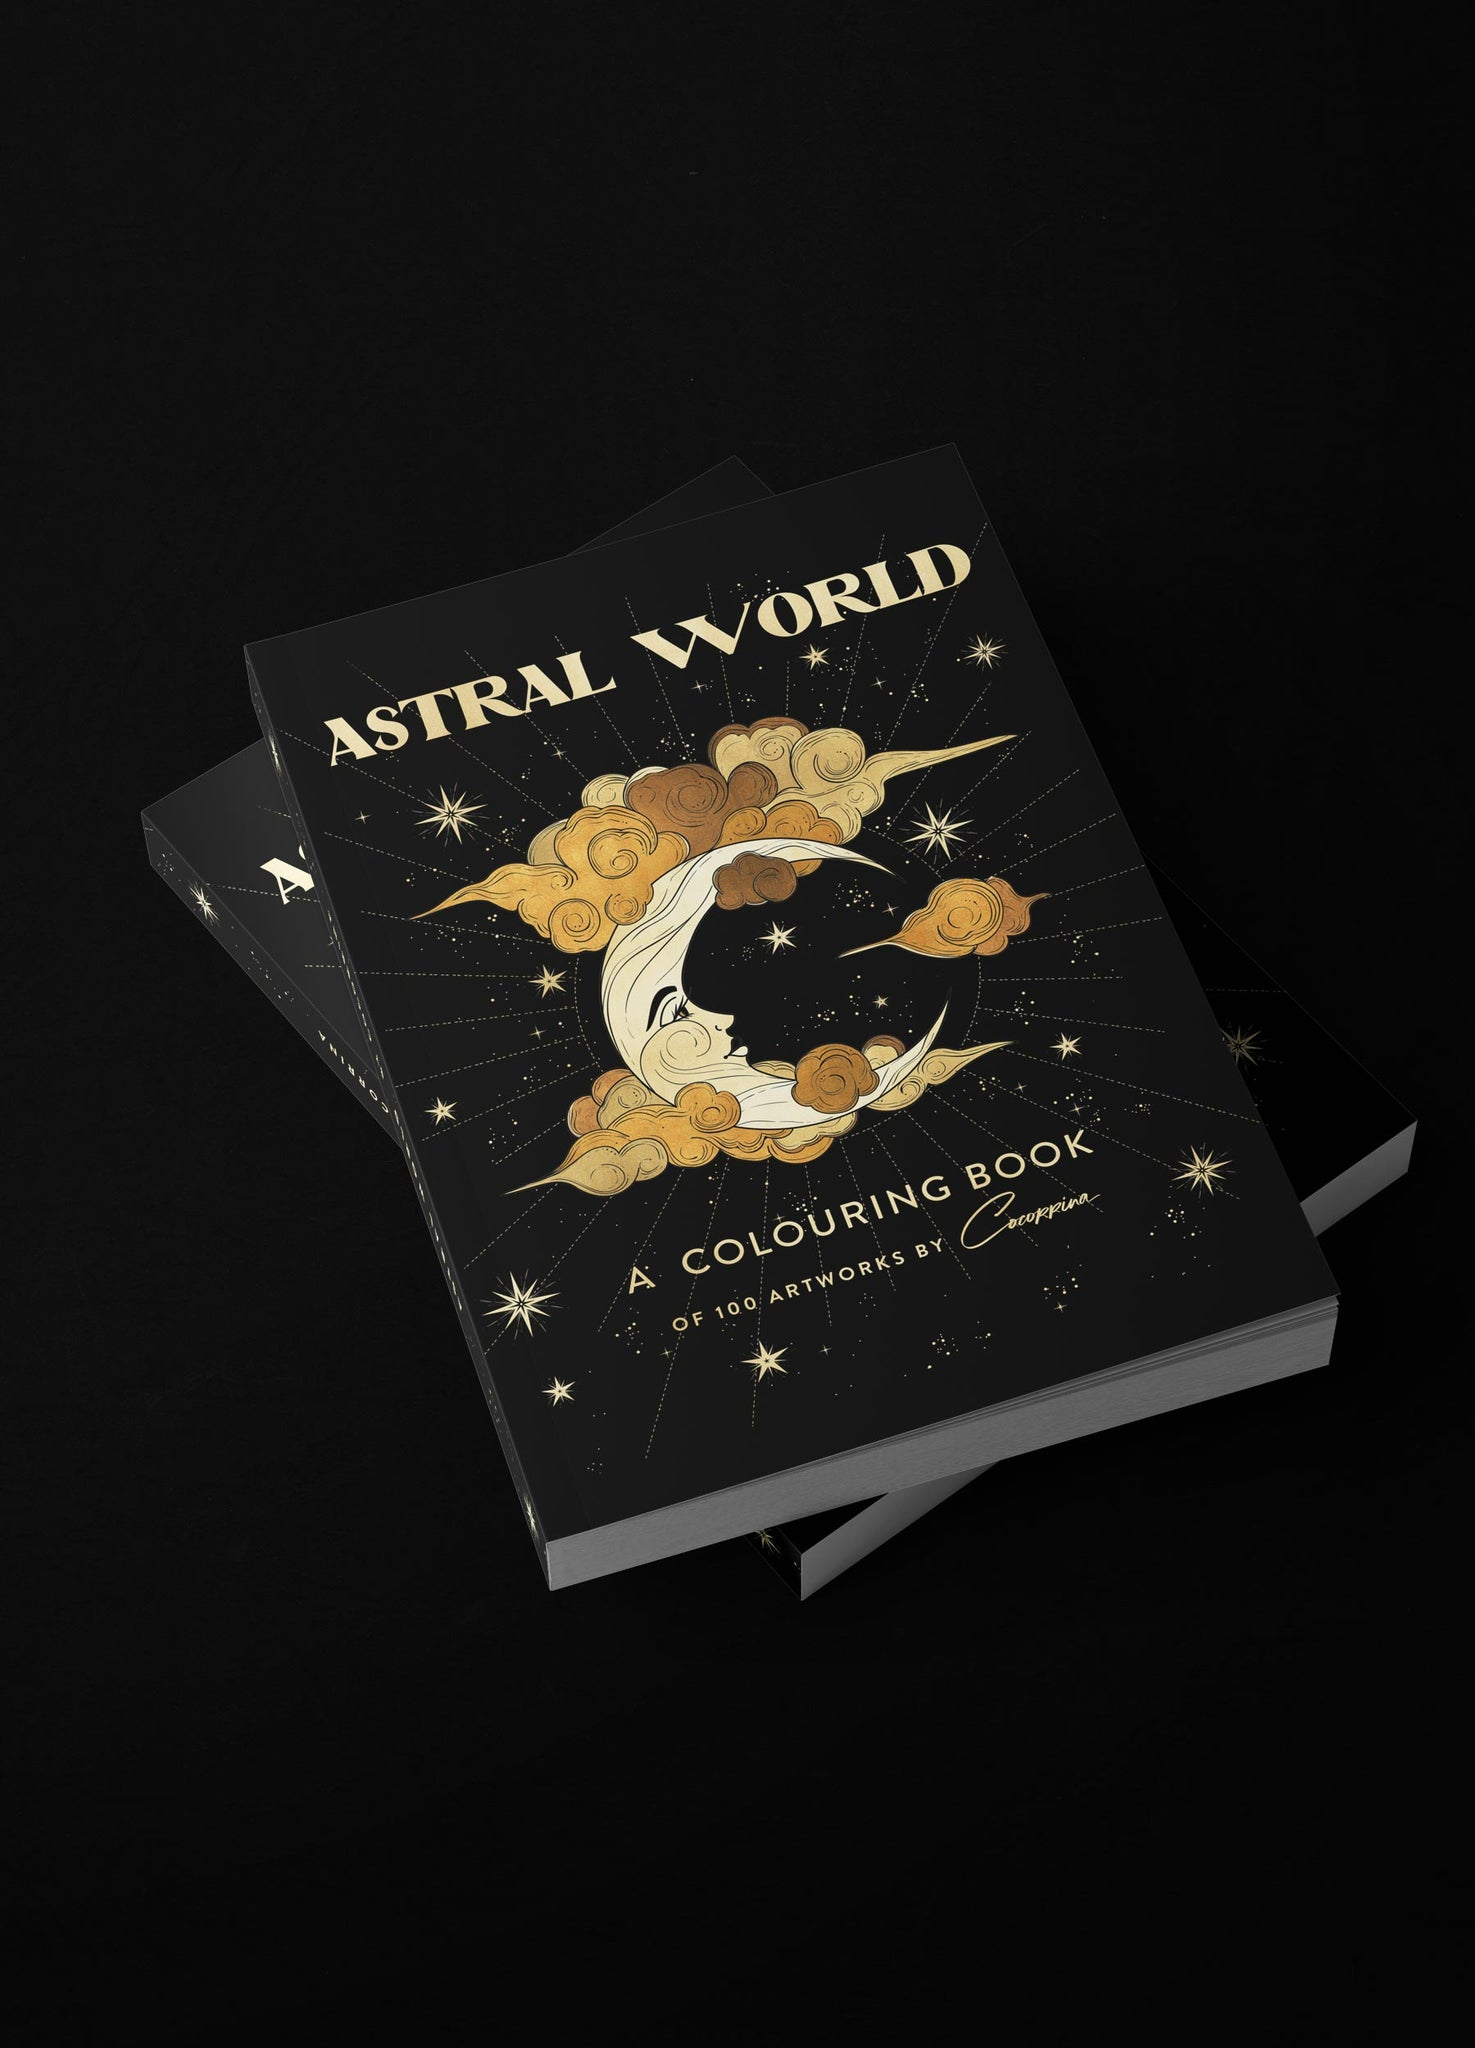 Astral World Colouring Book